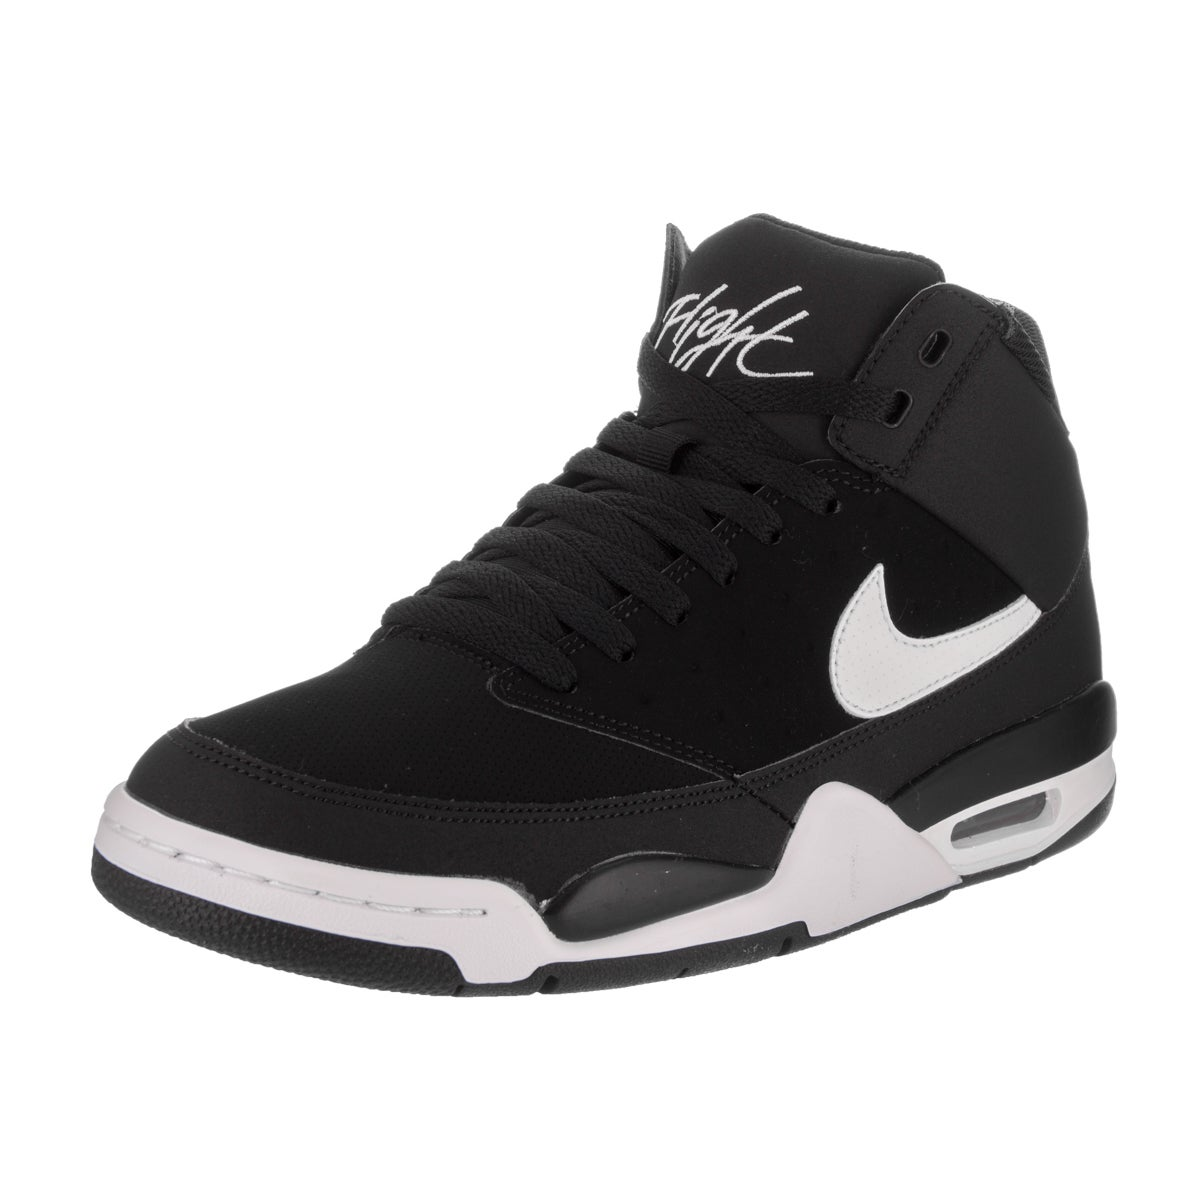 tambor vértice Muscular  Nike Men's Air Flight Classic Black and White Basketball Shoes - Overstock  - 14396830